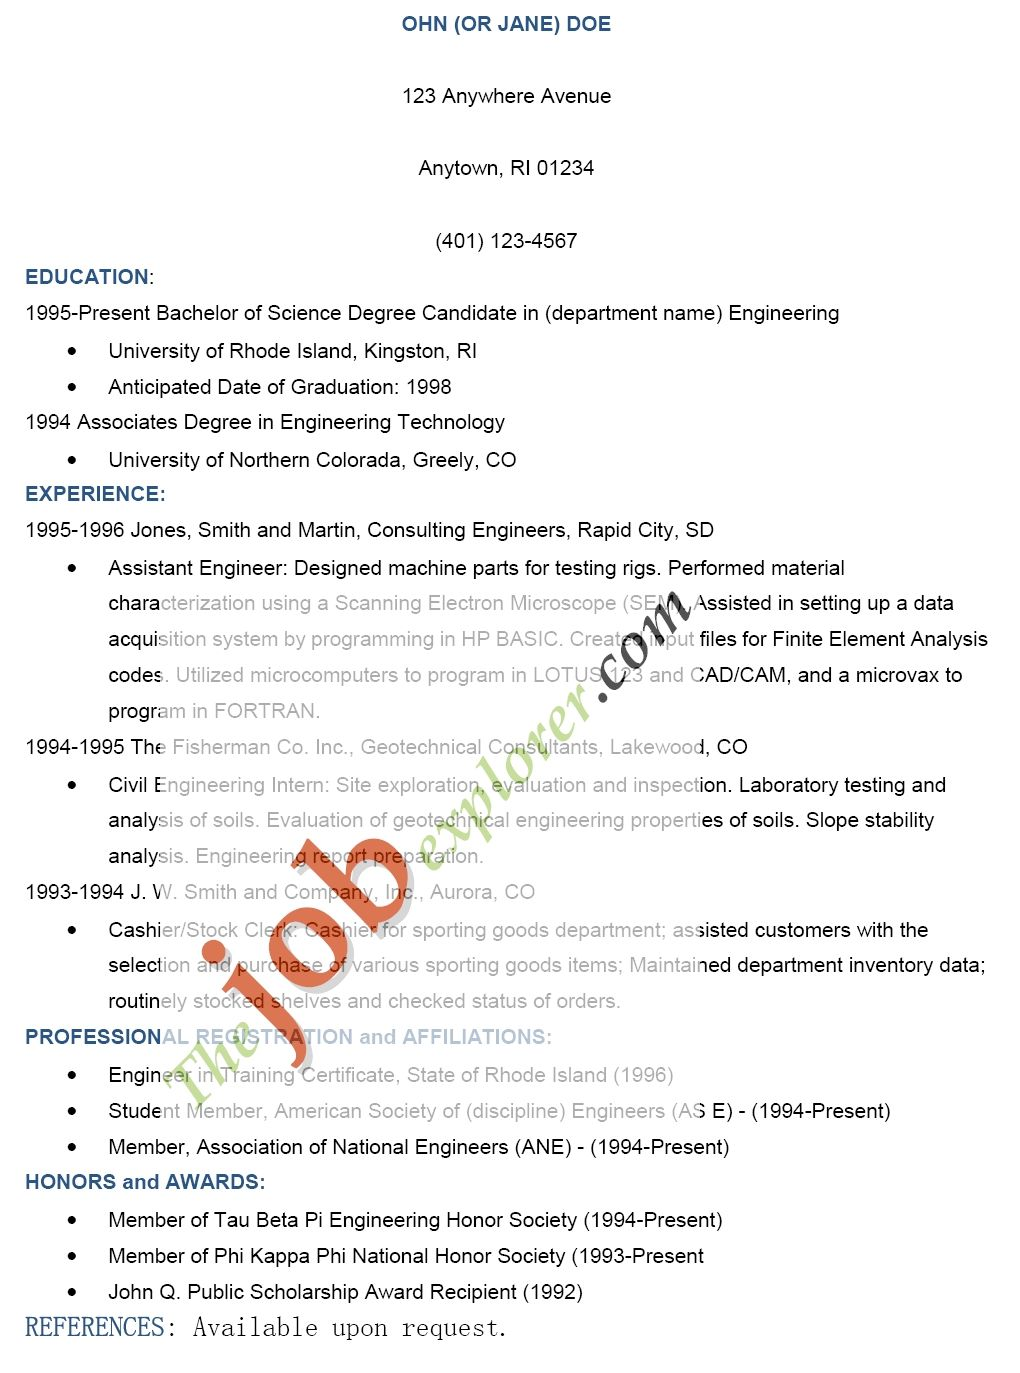 Cover Letter Sample For Consulting Job Proposal Writer Category